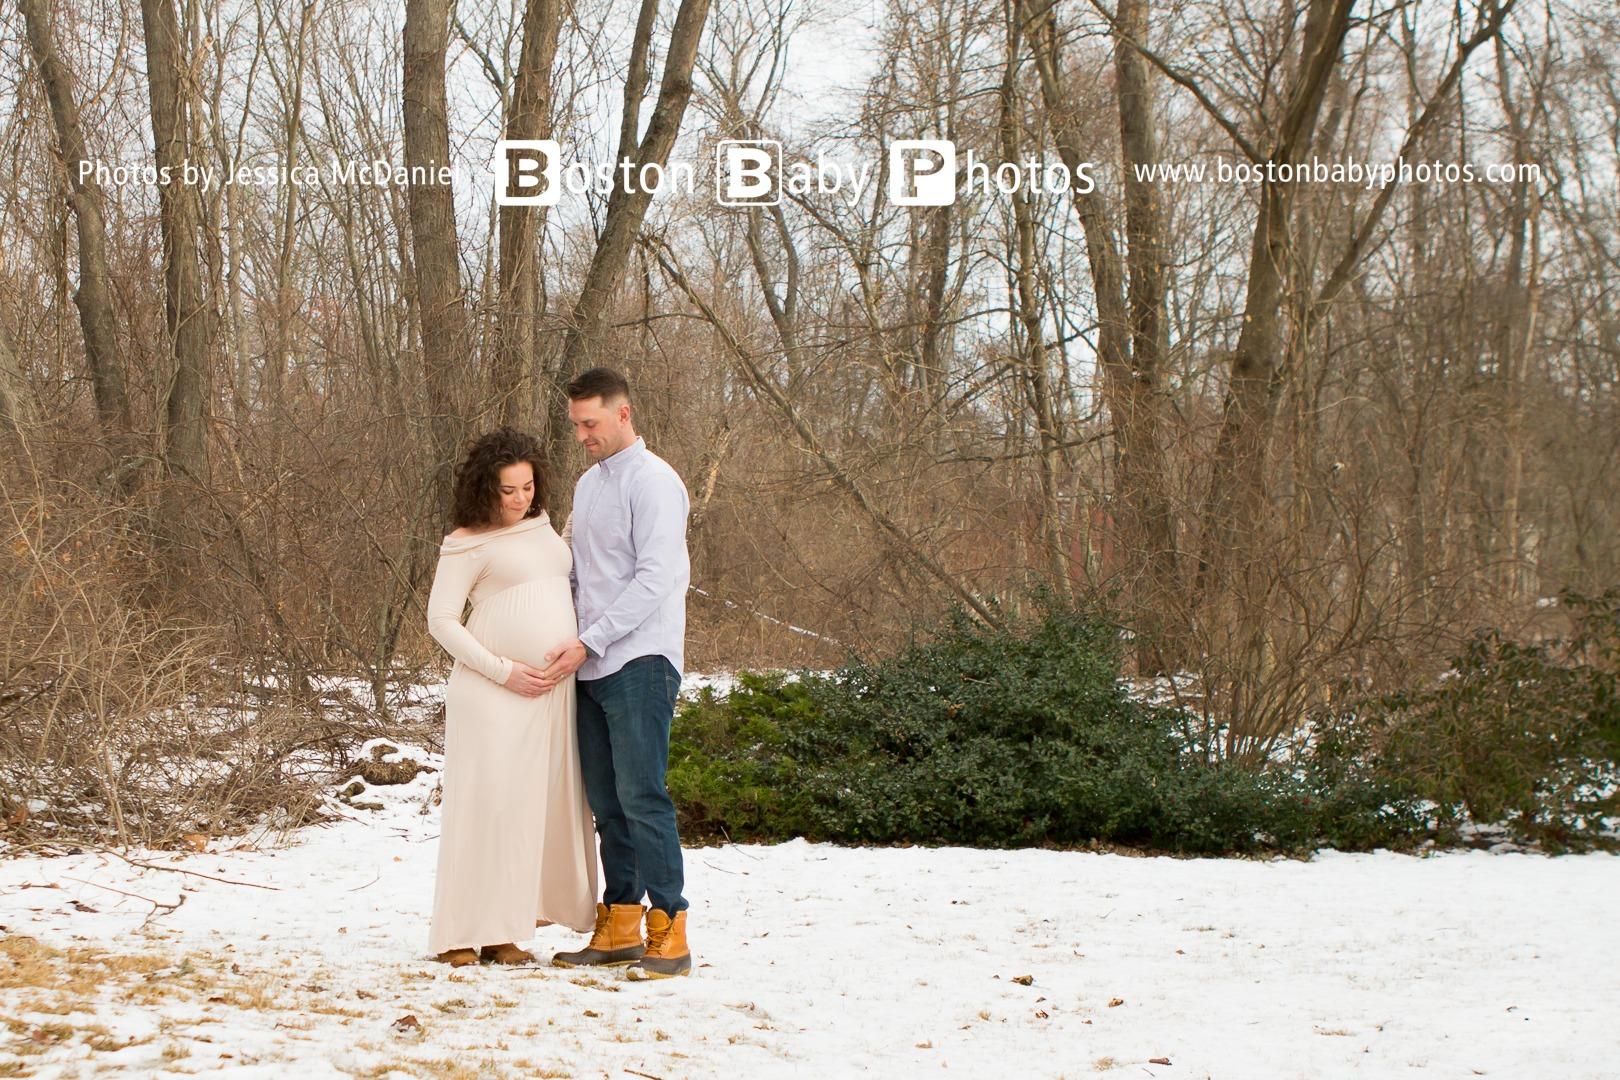 A Snowy Maternity Minishoot at home in Ashland, MA